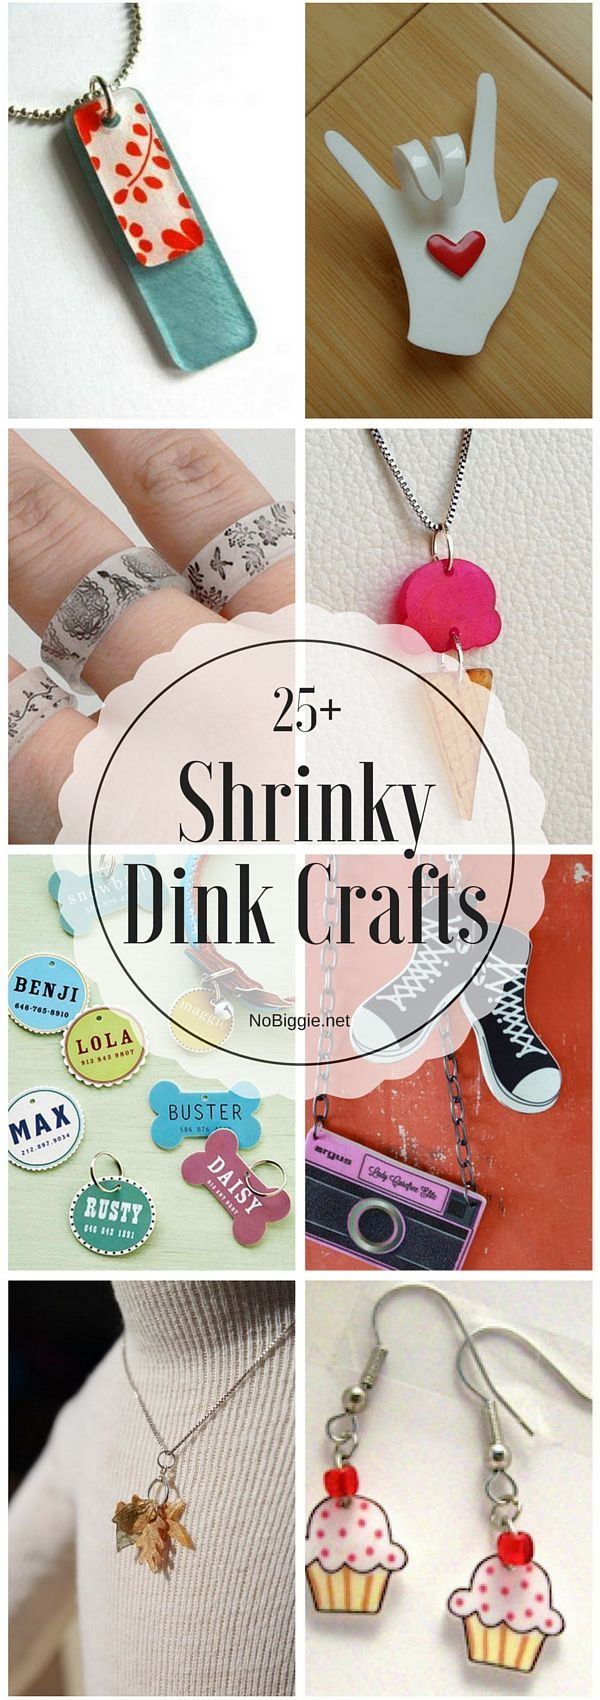 25+ Shrinky Dink Crafts | http://NoBiggie.net